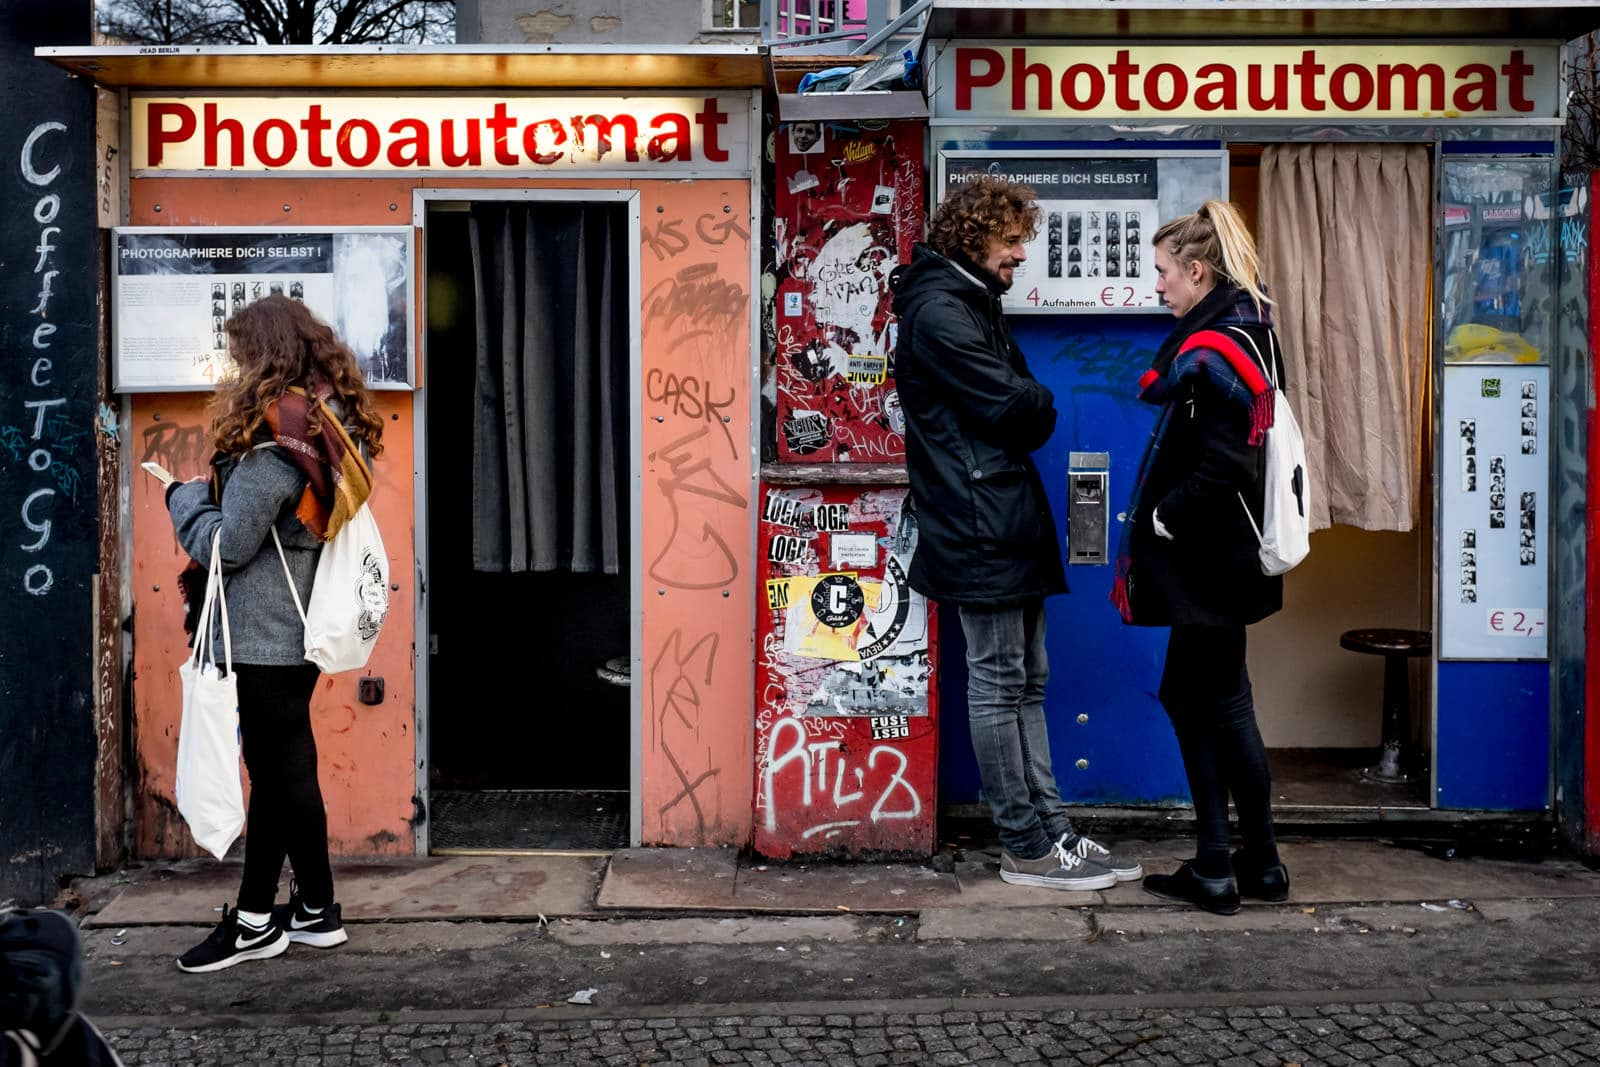 photoautomat camera booths in Berlin, Germany